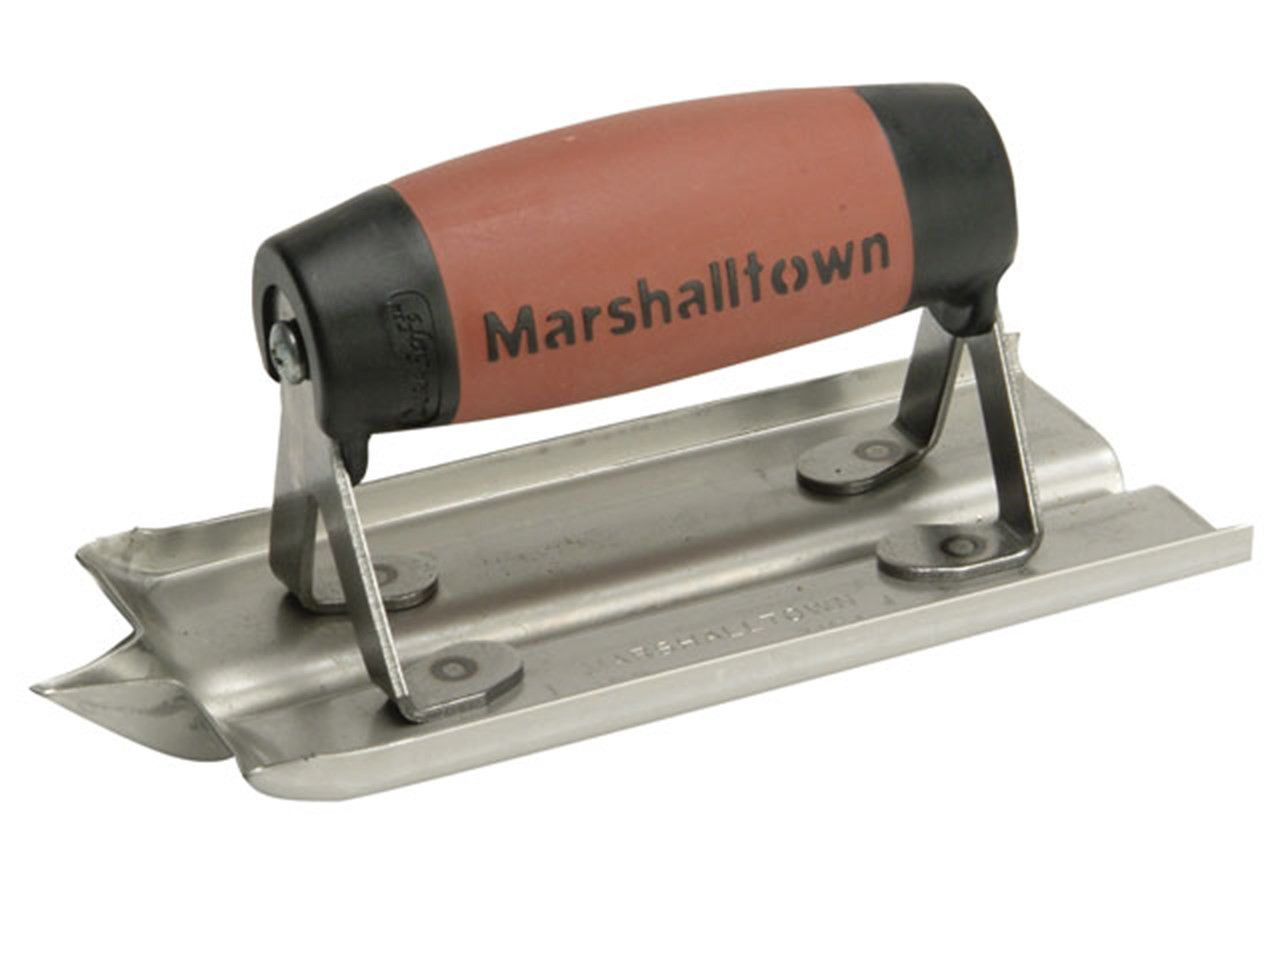 Marshallstown M180D S/S Cement Hand Groover 6x3In Durasoft